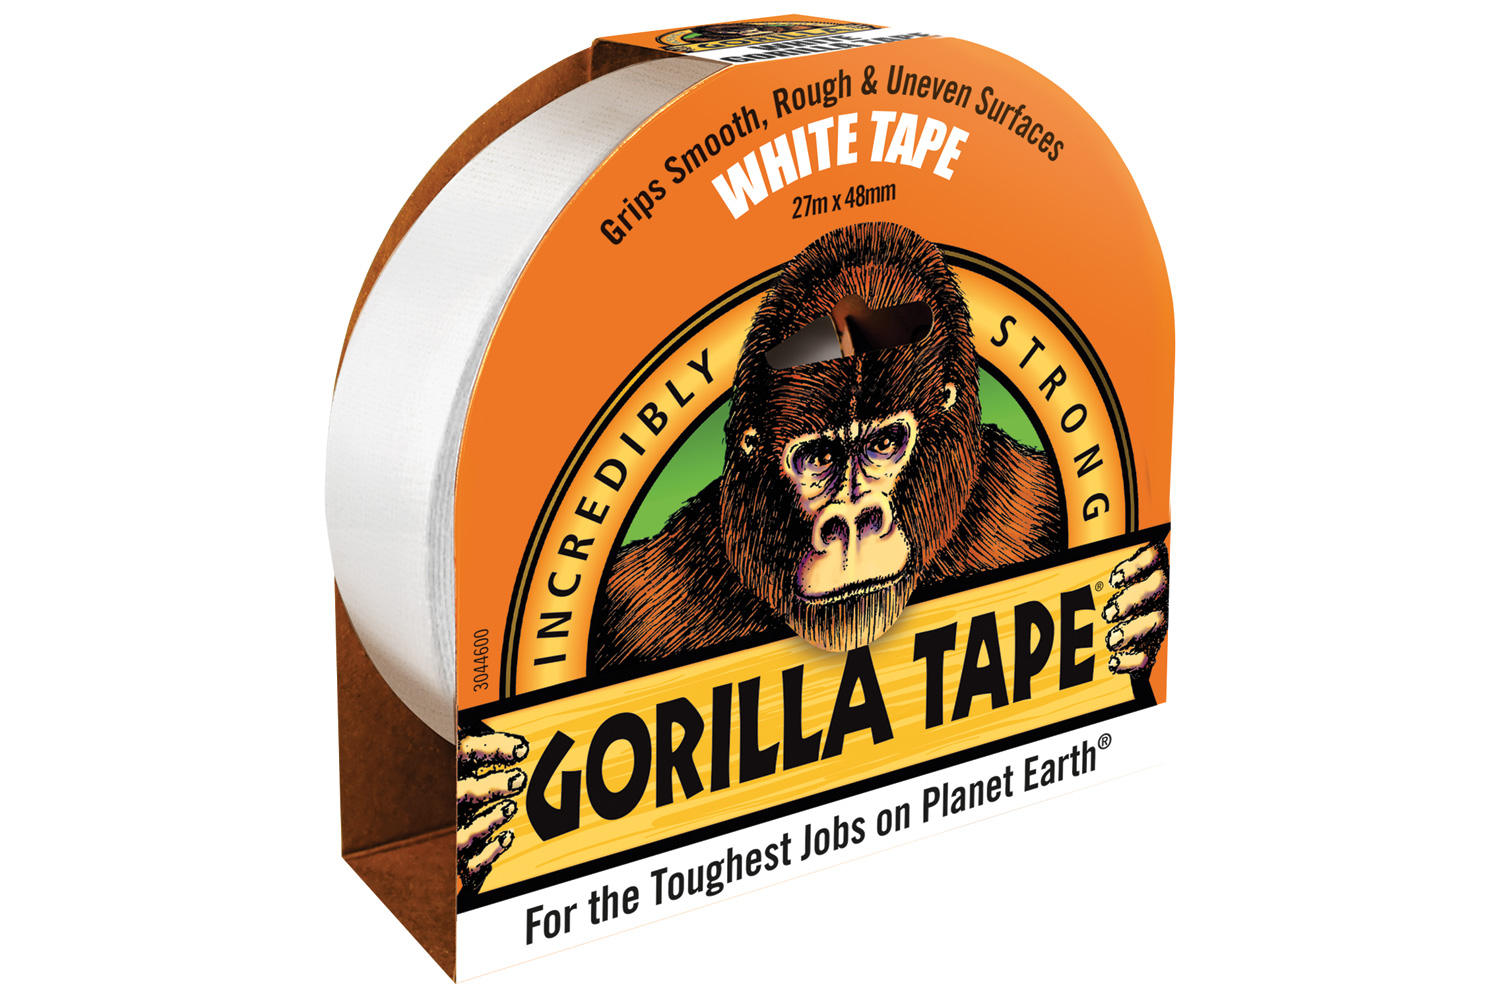 Gorilla Duct Tape White 27m